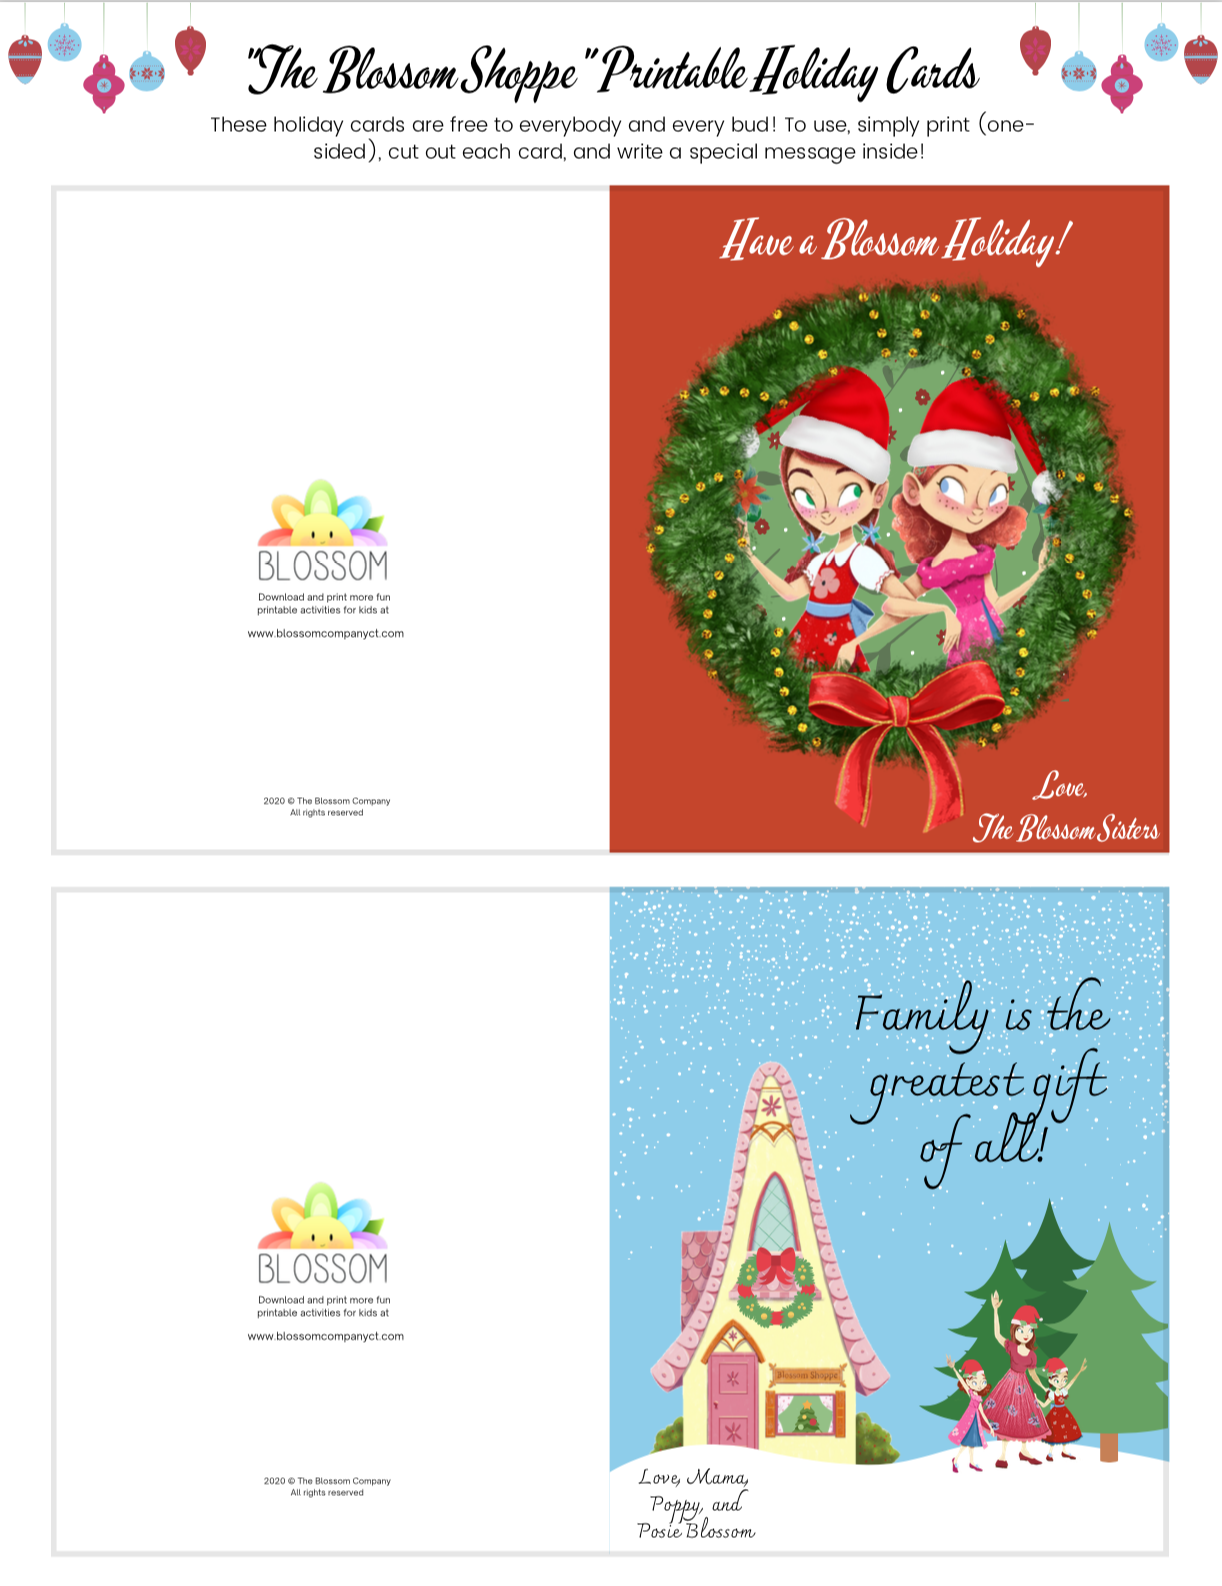 The Blossom Shoppe Printable Holiday Cards